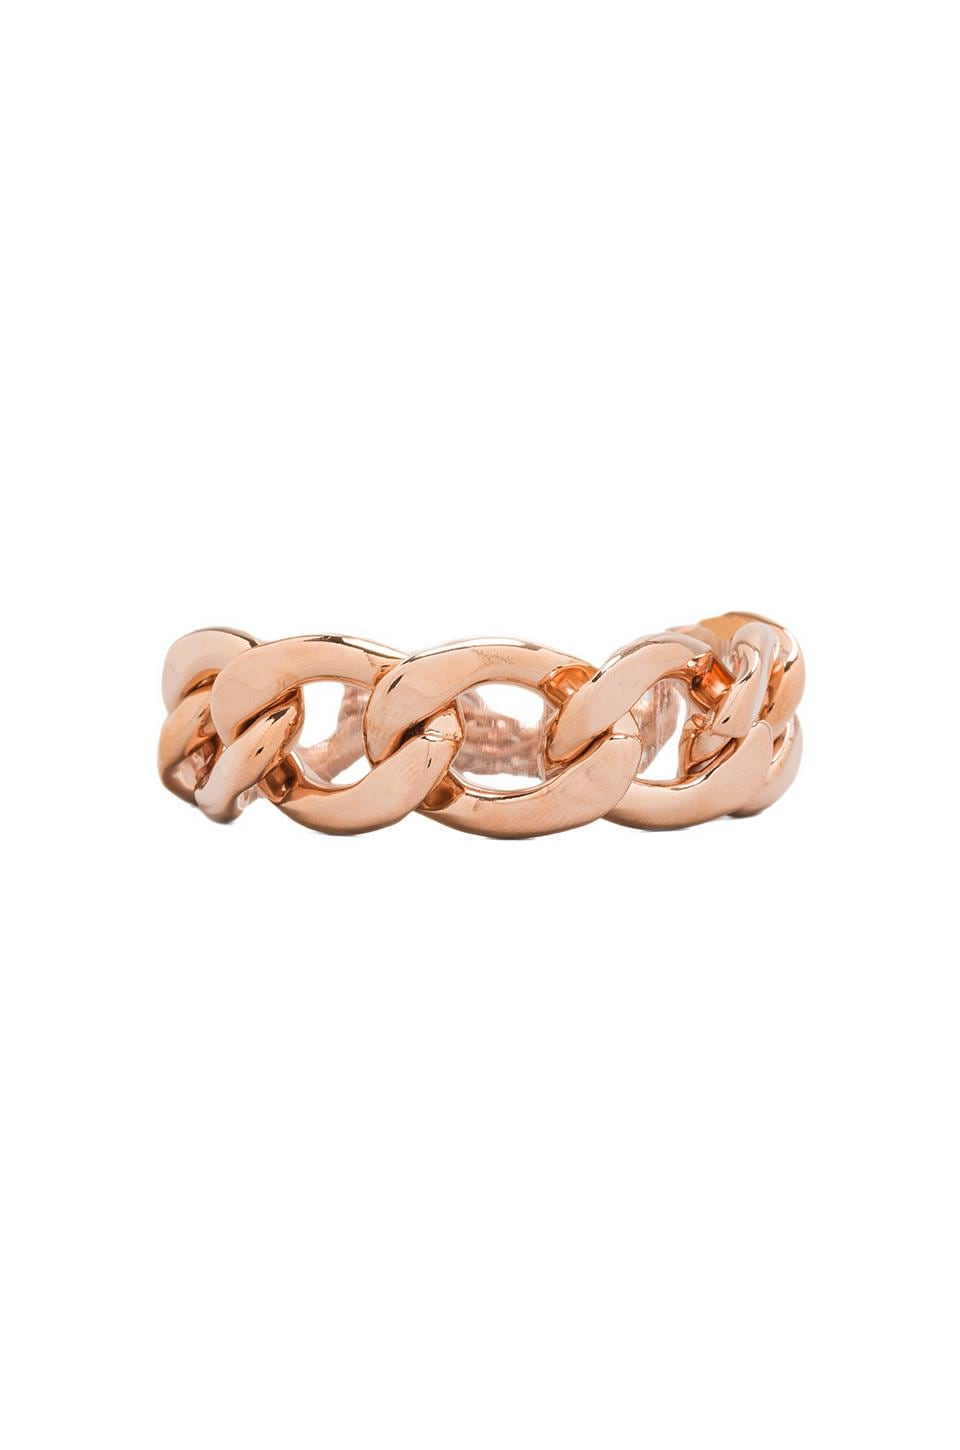 Juicy Couture Luxe Link Bracelet in Rose Gold